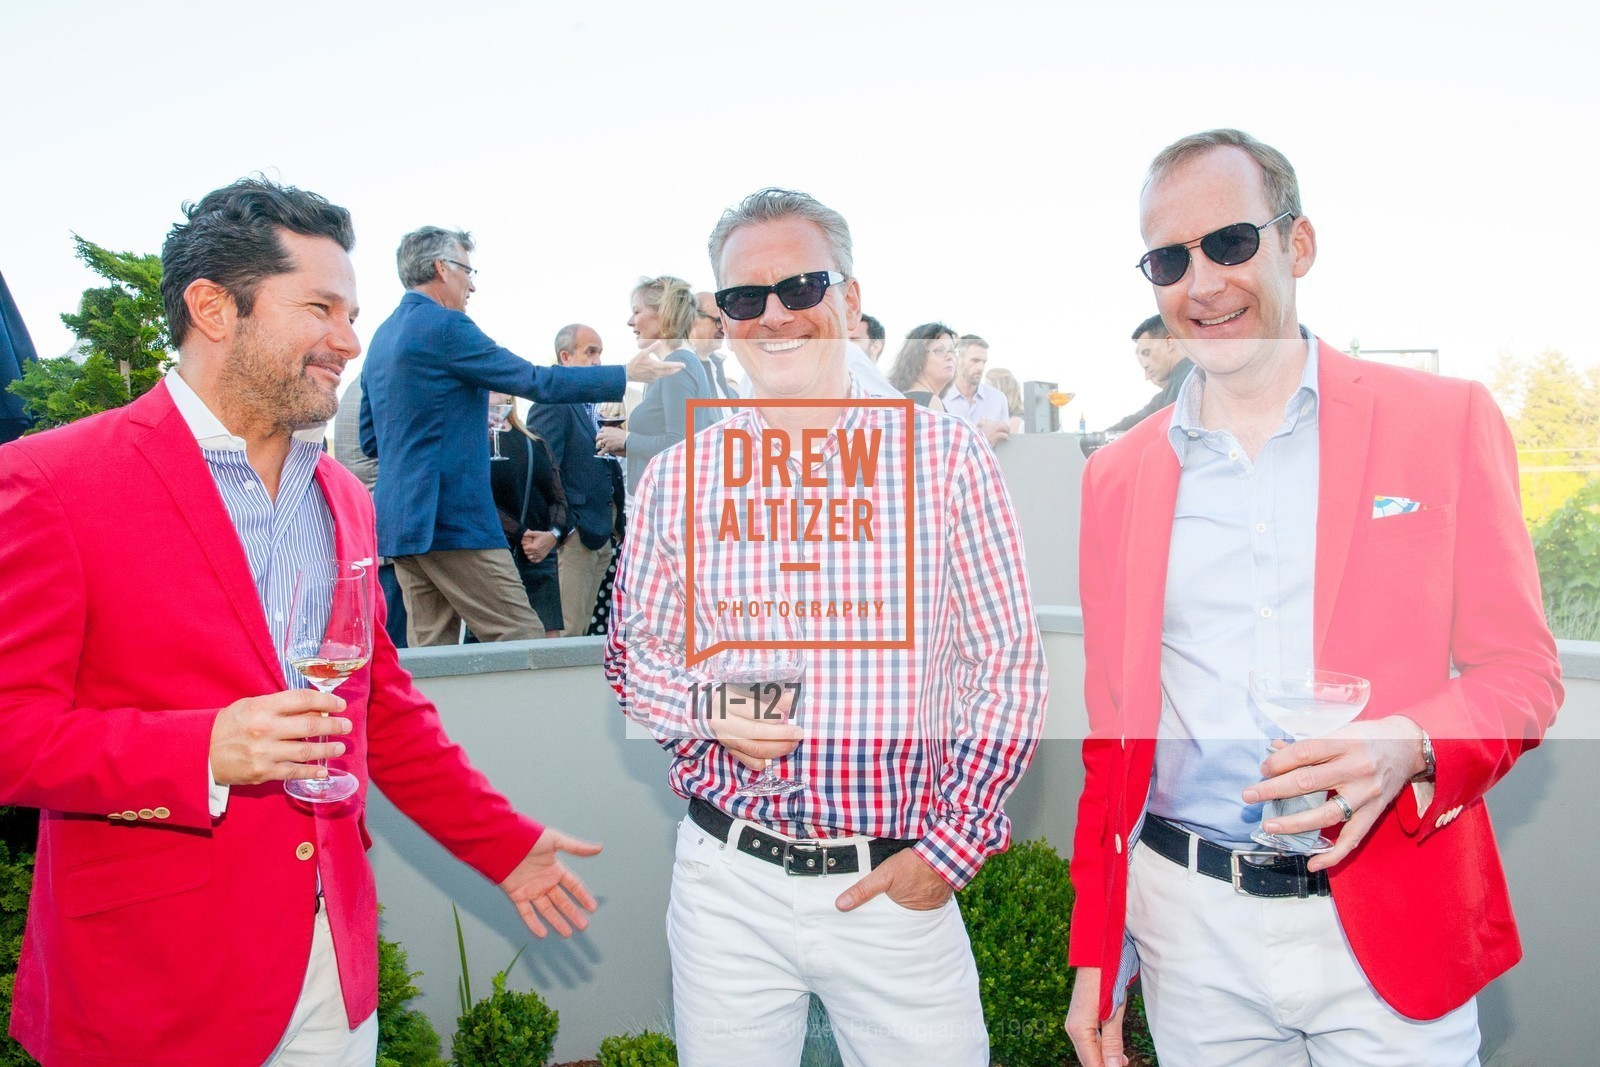 Warren Chase, Oliver Clode, James Schroeder, An Evening in the Vineyard hosted by JACK CALHOUN & TRENT NORRIS, Jack Calhoun & Trent Norris Vineyard. 3393 Dry Creek Road, Healdsburg CA 95448, May 22nd, 2015,Drew Altizer, Drew Altizer Photography, full-service event agency, private events, San Francisco photographer, photographer California